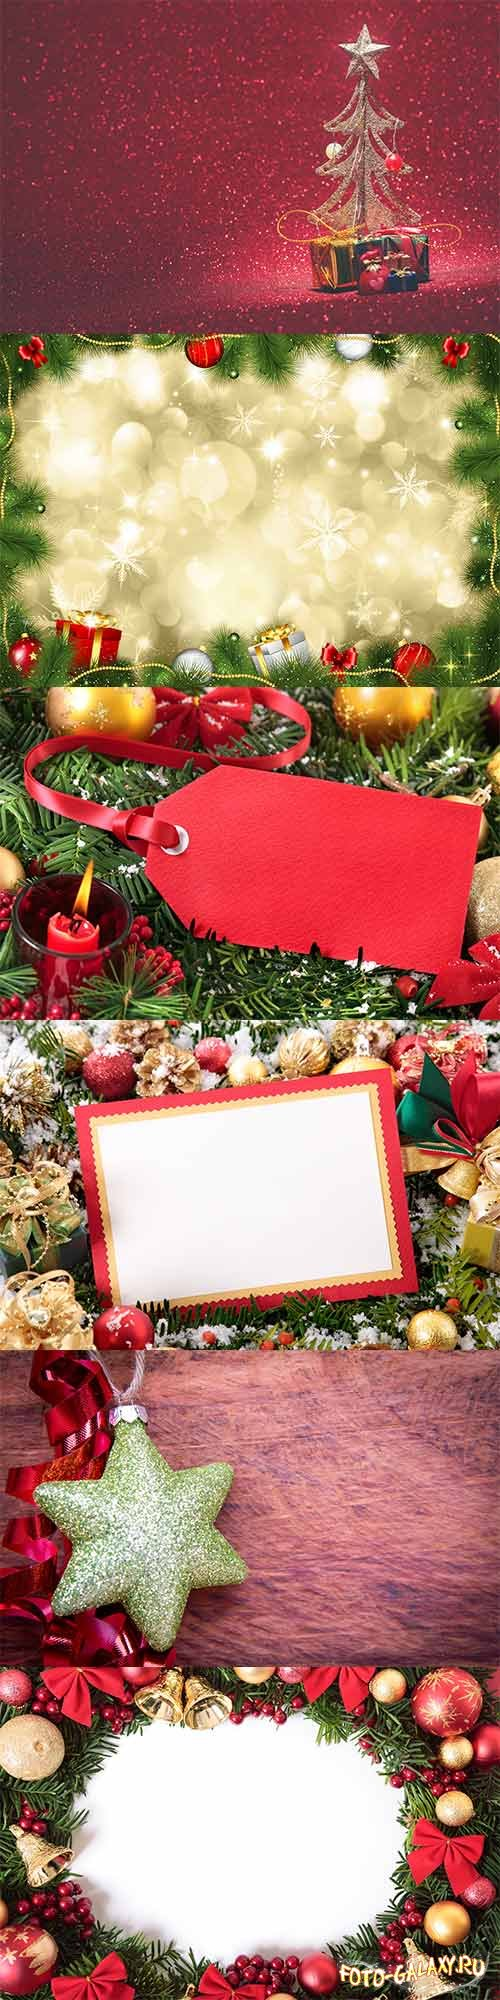 Christmas bitmap backgrounds 8